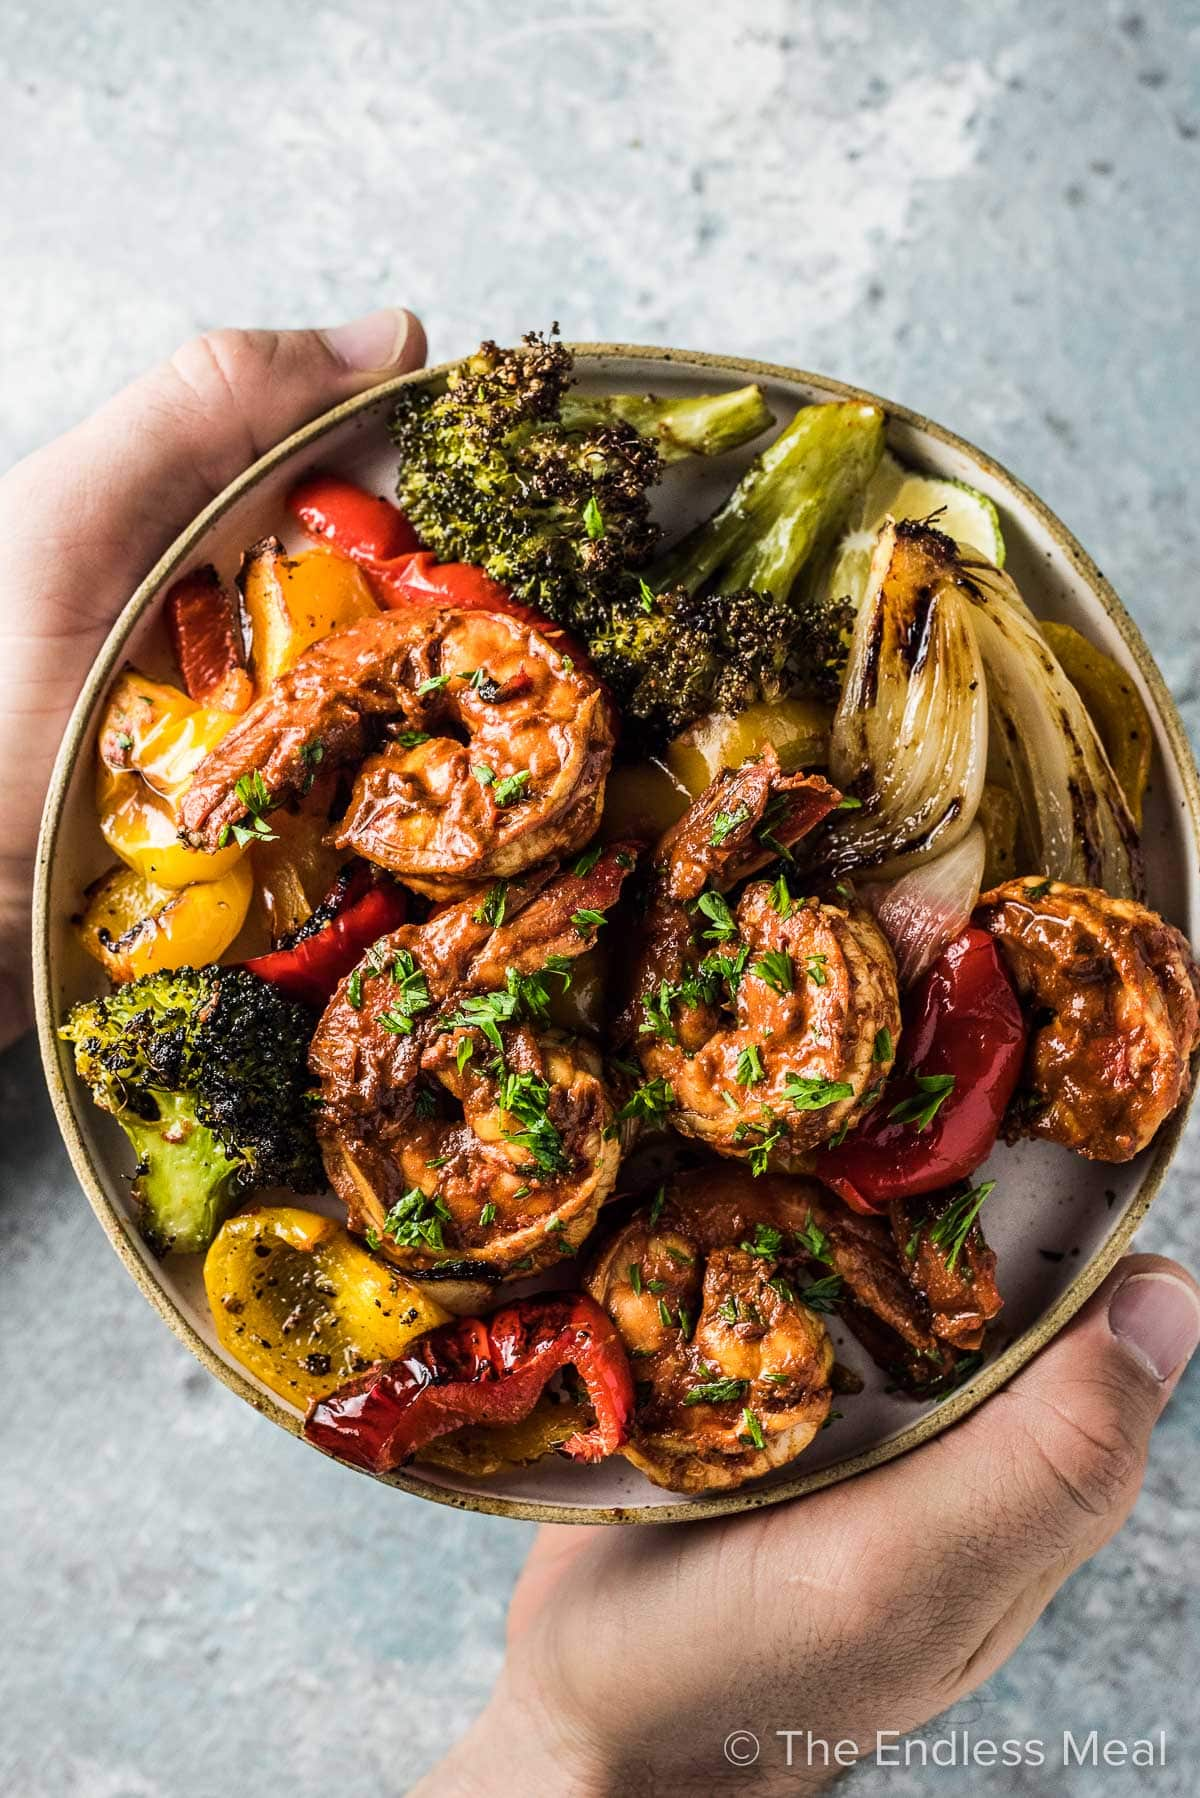 Hands holding a plate of chili lime shrimp with lots of veggies.